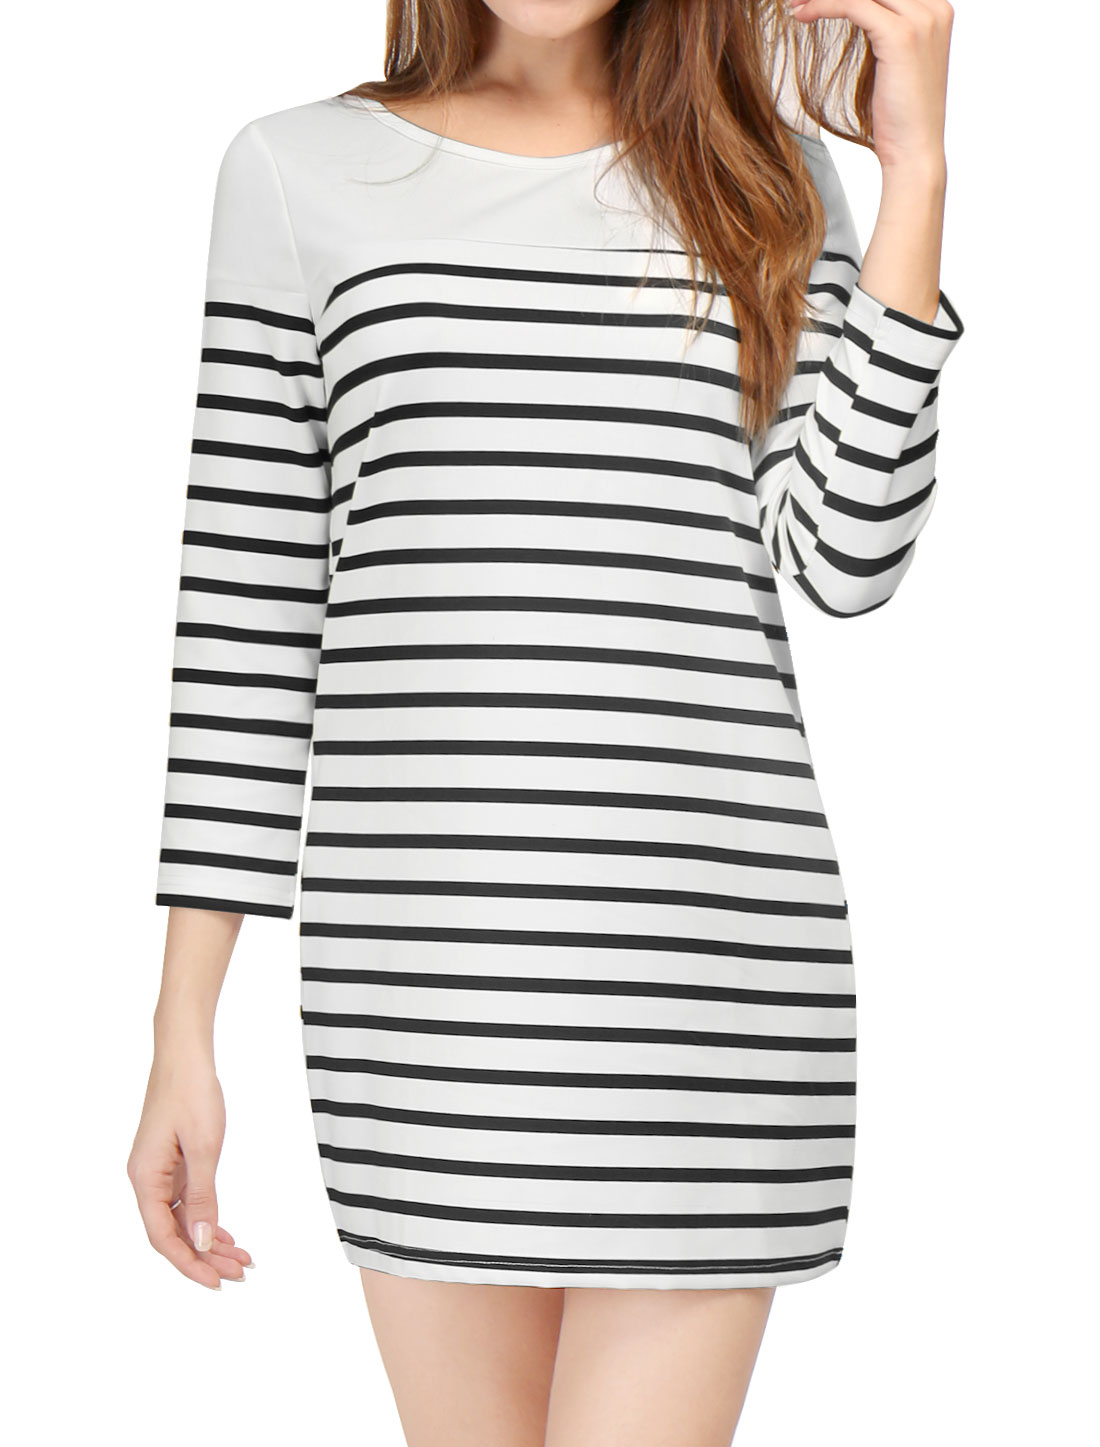 Women 3/4 Sleeves Heart Cutout Back Stripes Shift Dress White XS